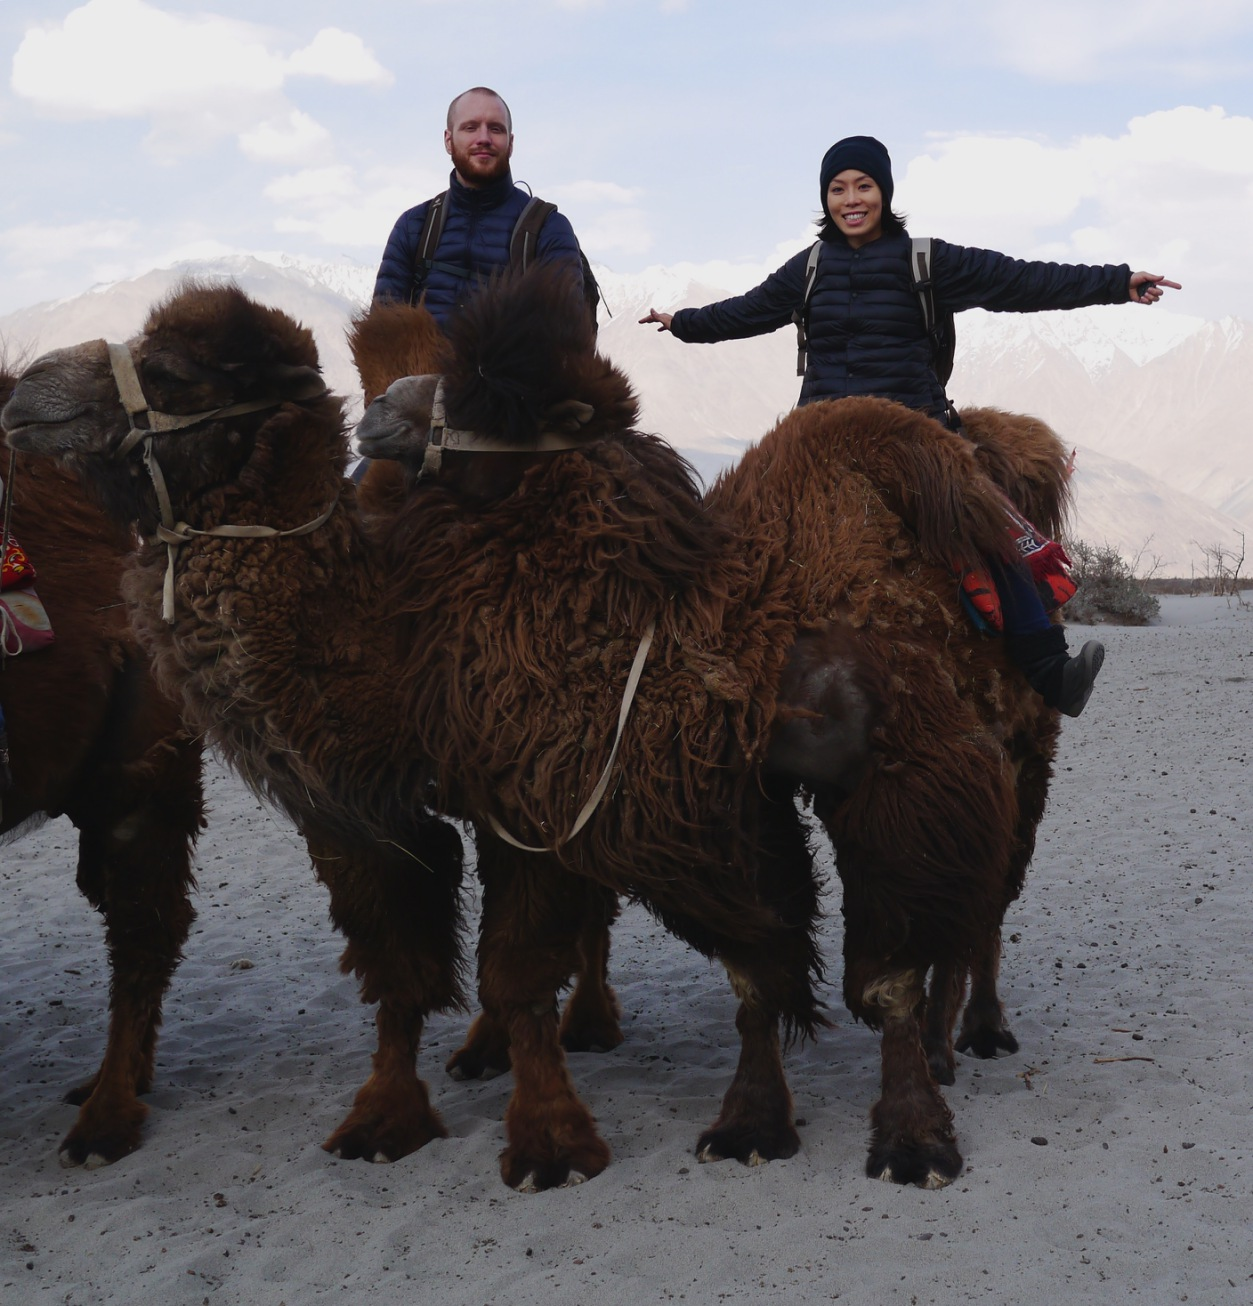 pud-and-karsten-on-bactrian-camels